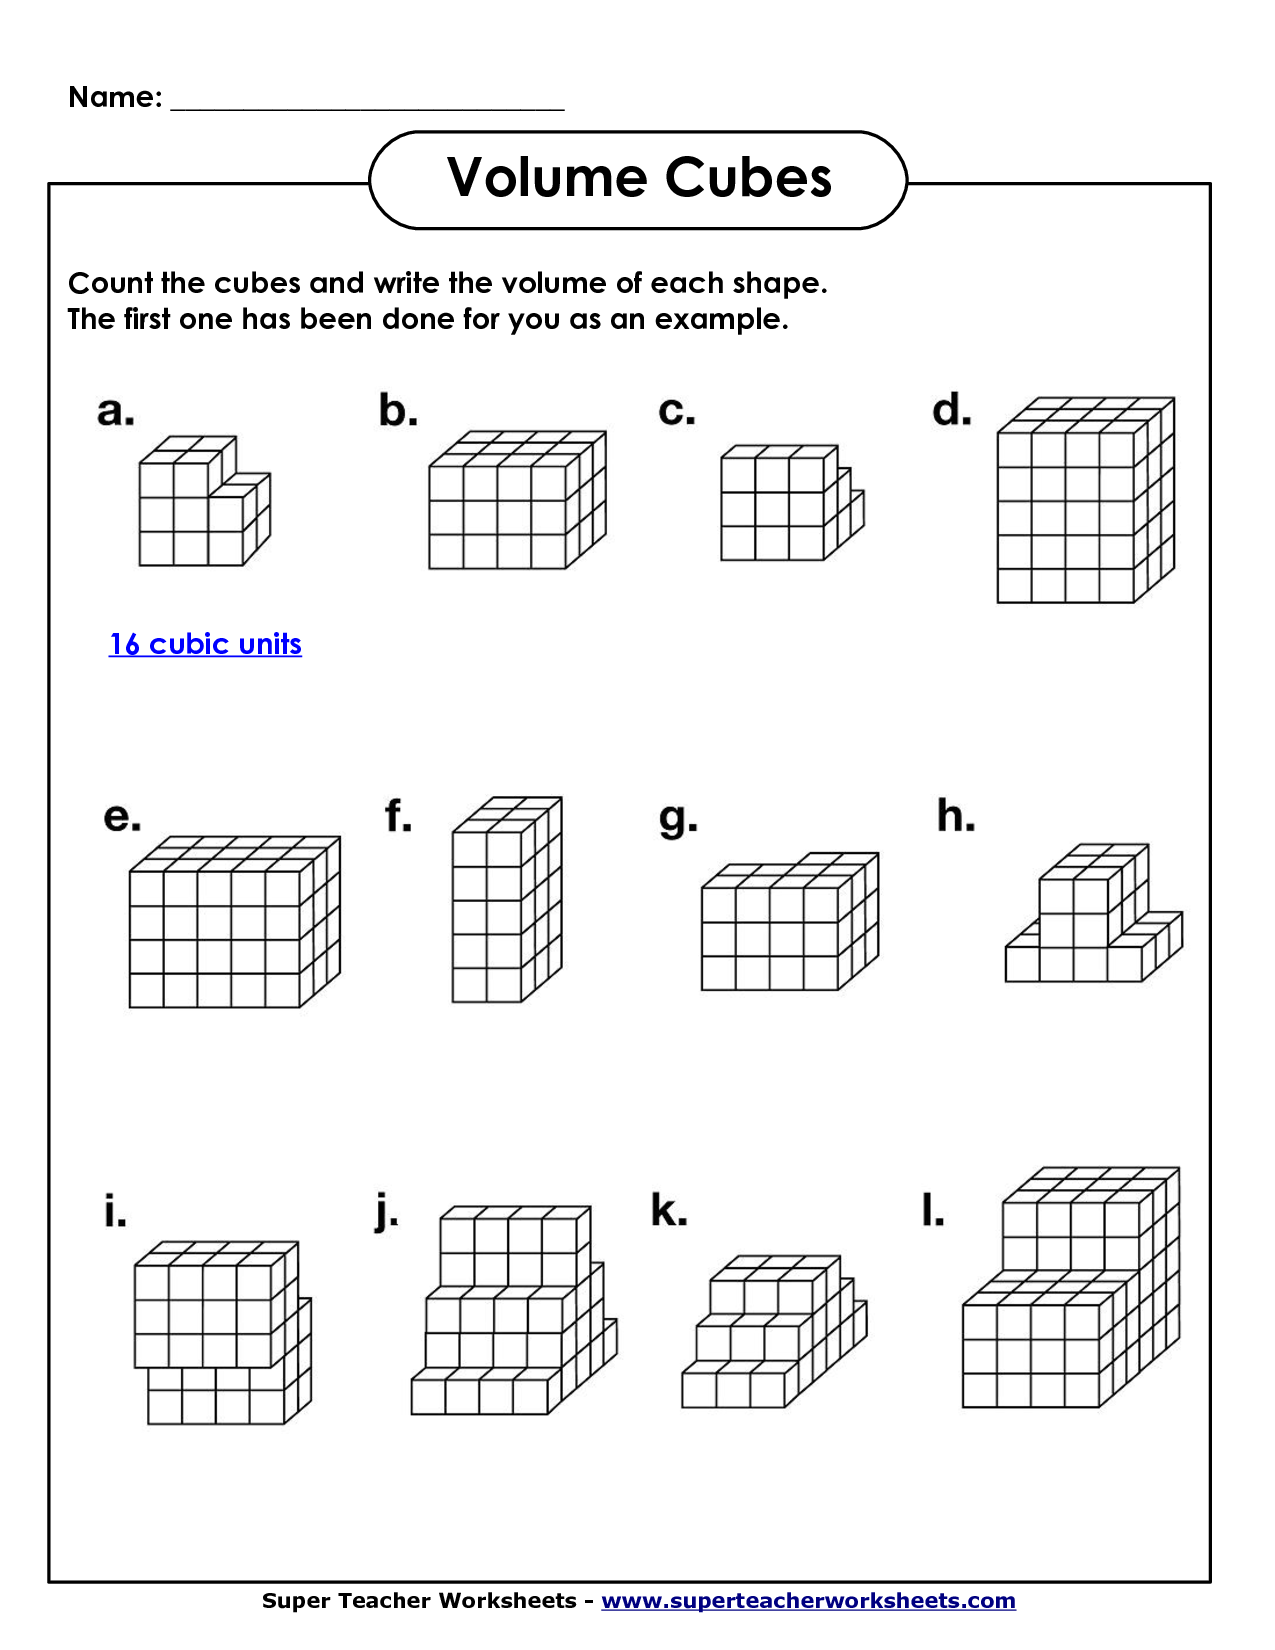 Volume of Rectangular Prism by Counting Cubes Math – Volume of Rectangular Prism Worksheet